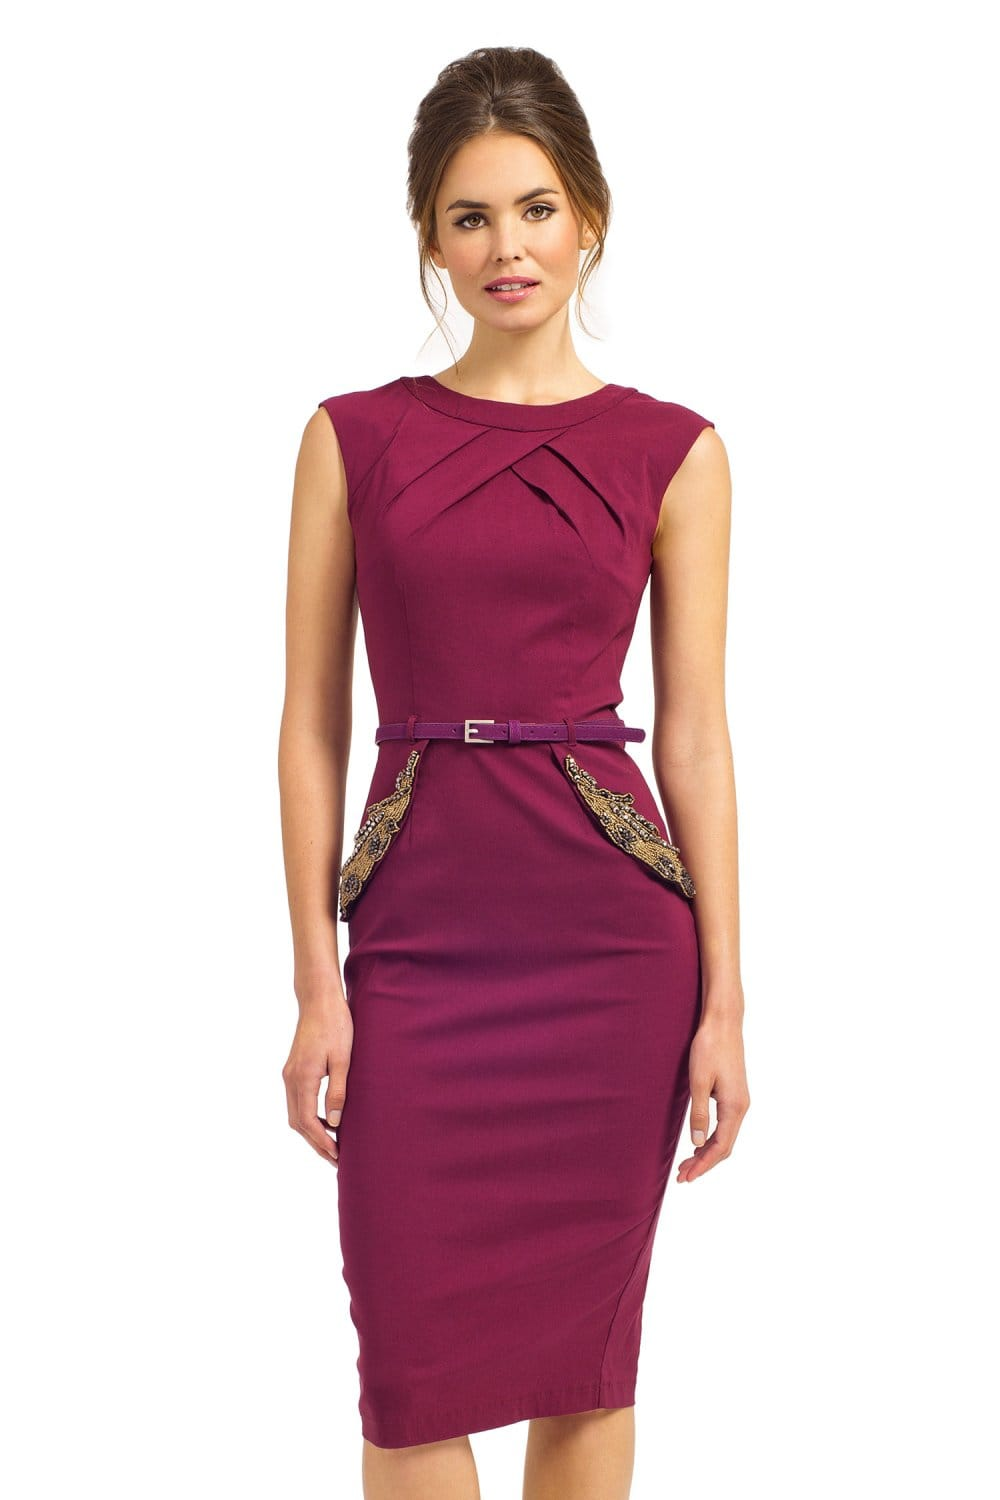 Bodycon Dresses With Pockets